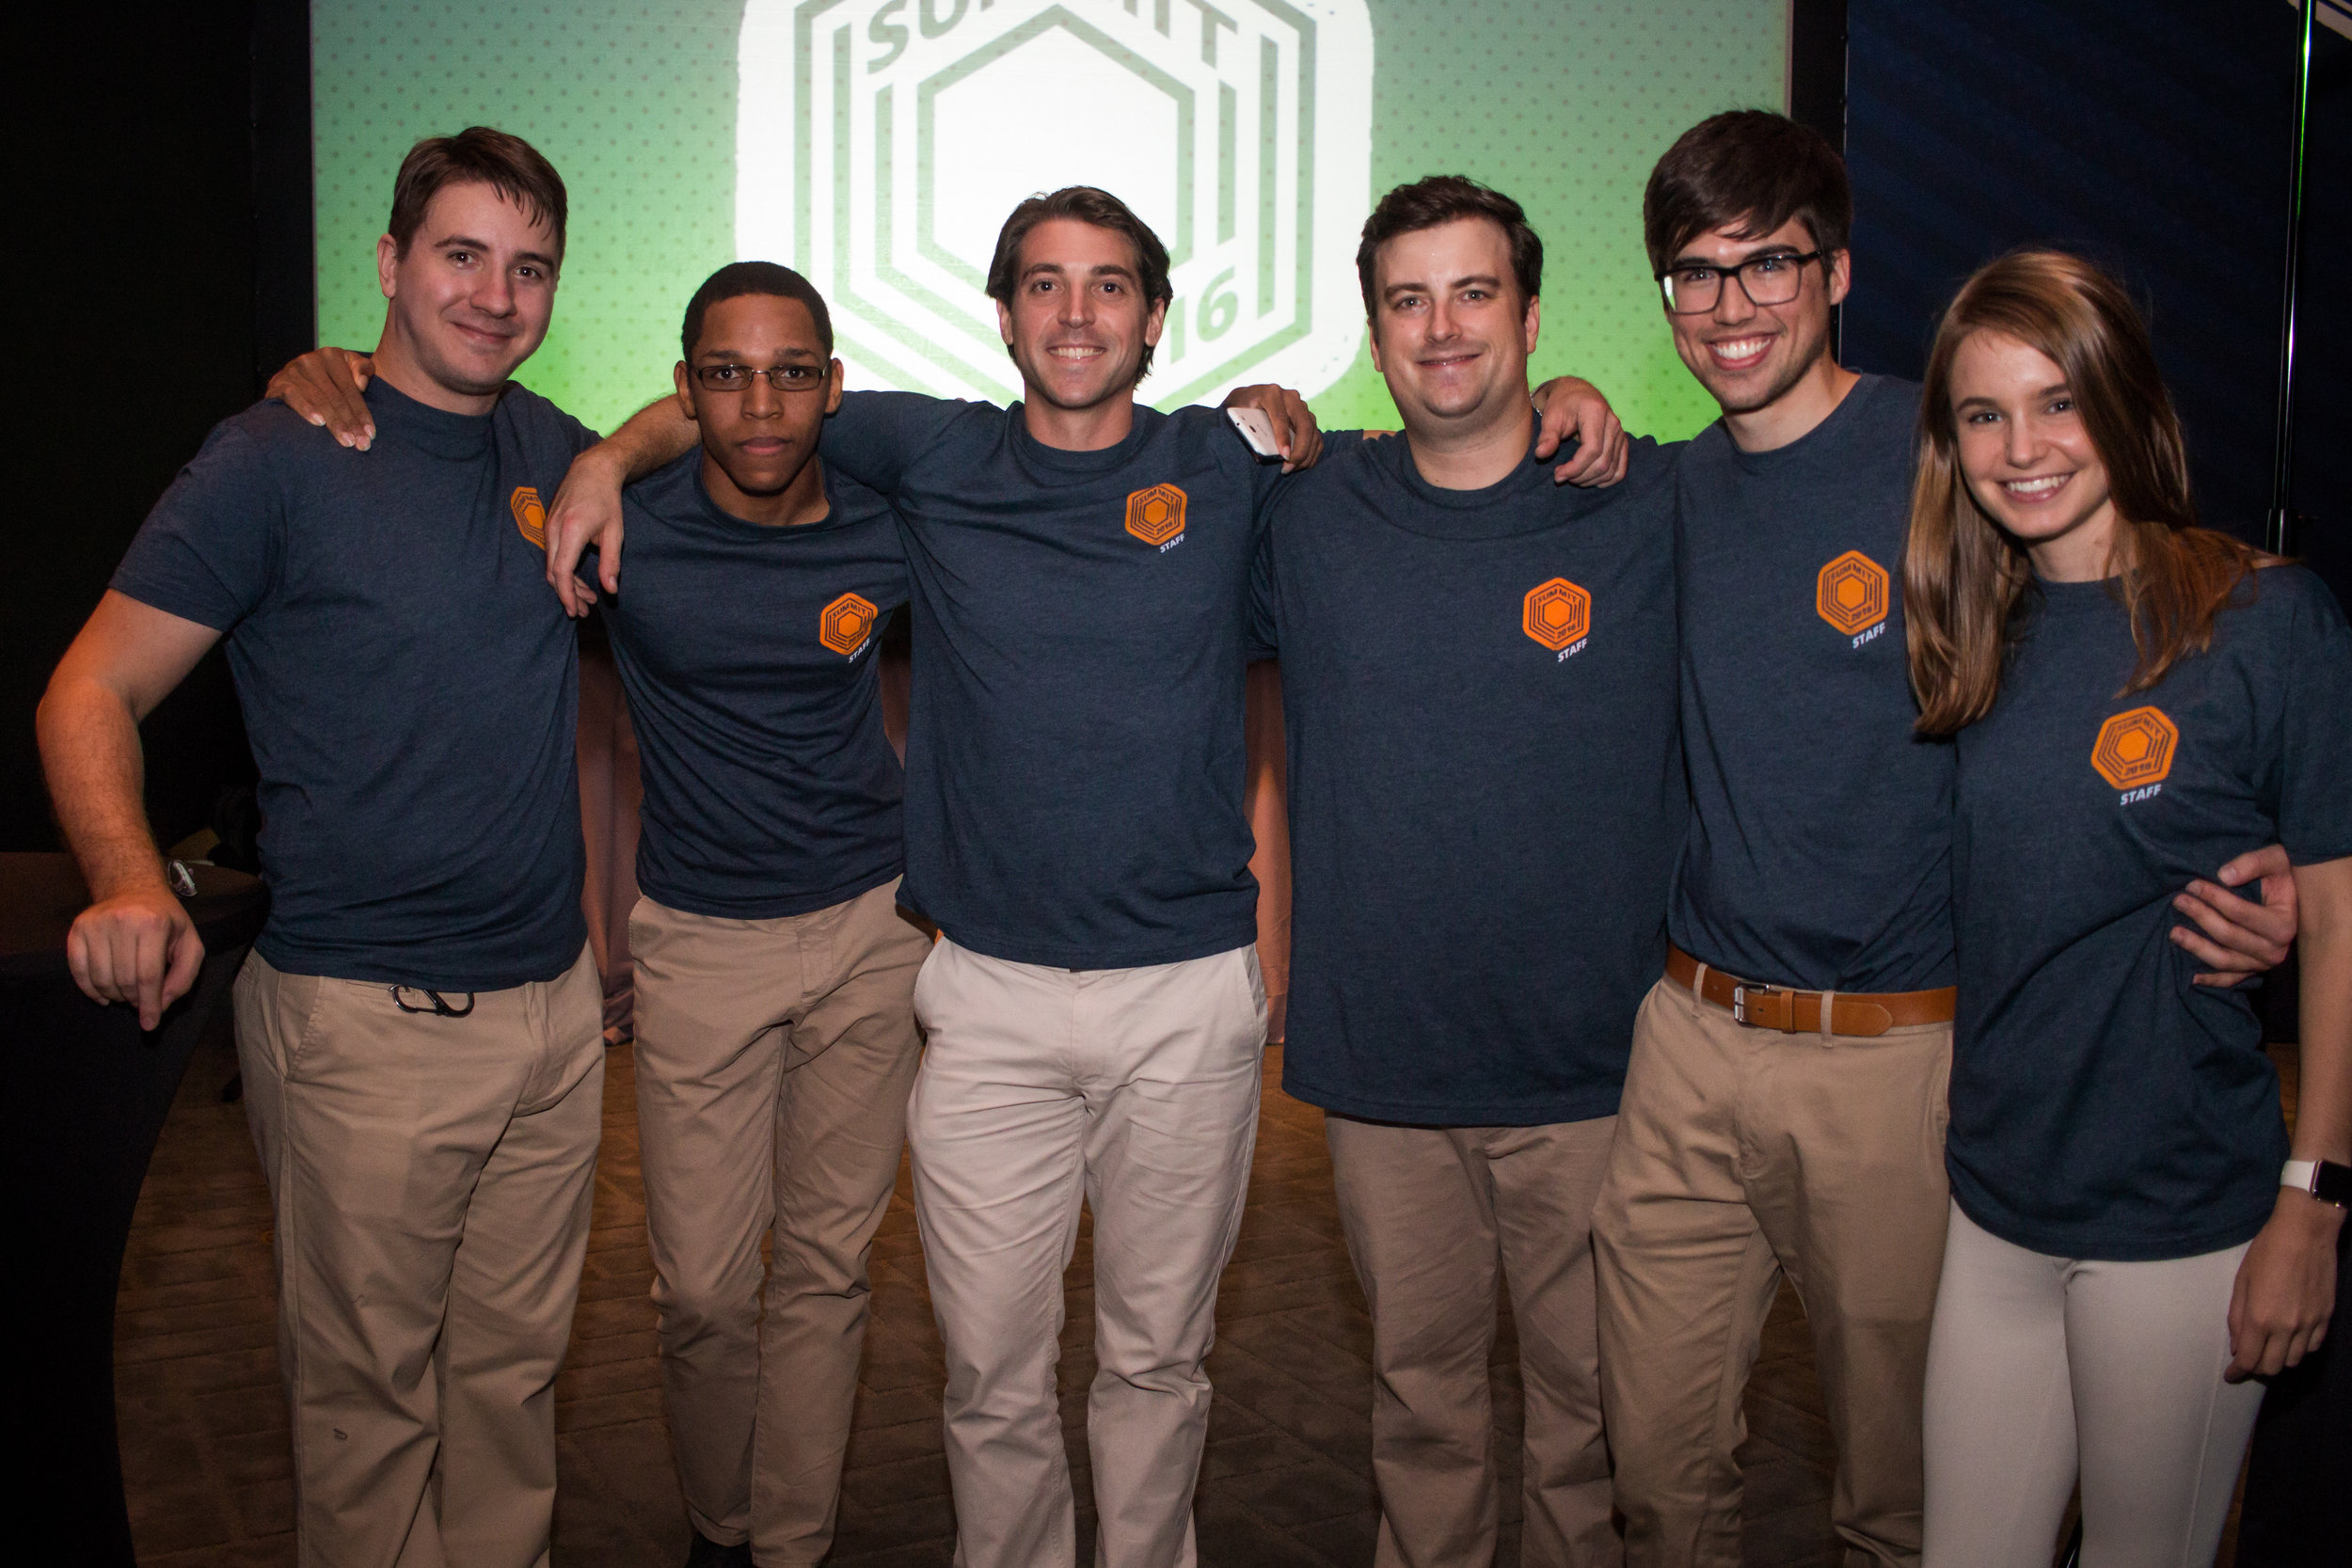 The AugmentedRealityRental.co Team (William Griggs Is fourth from the left)